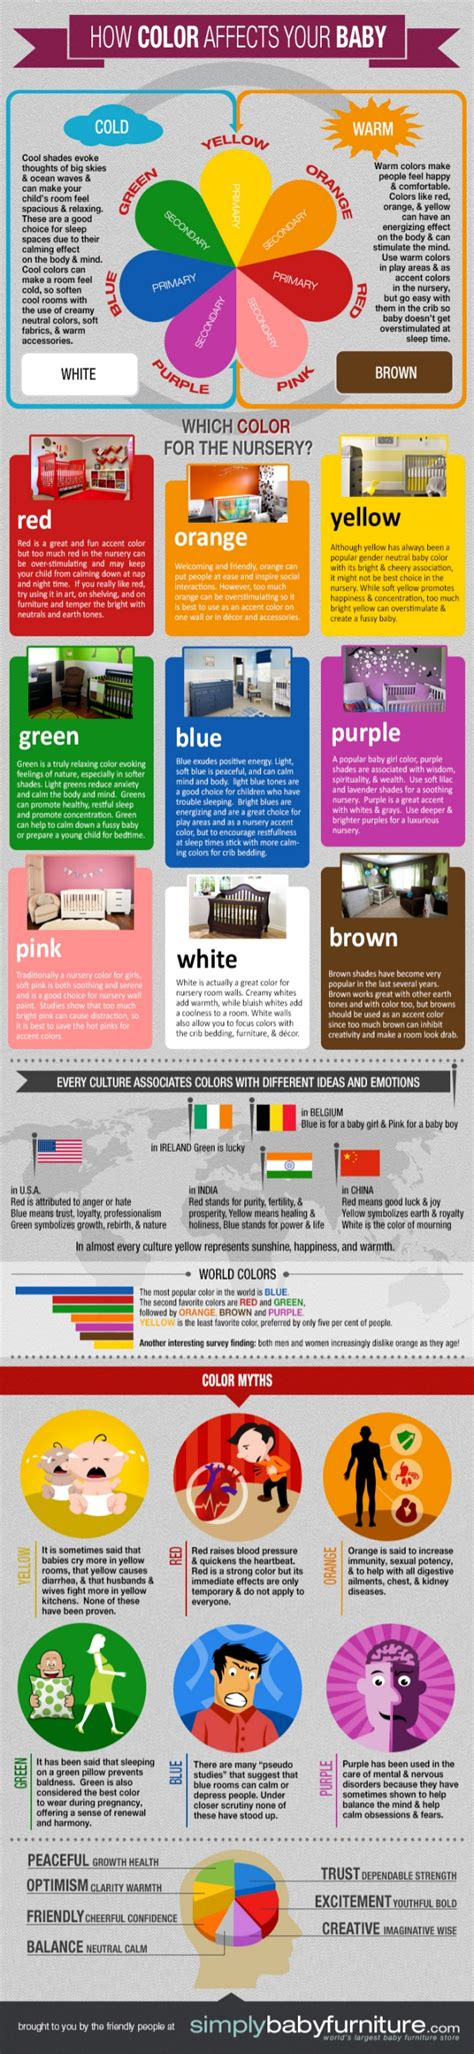 how color affects mood nursery color guide how color affects your baby s mood